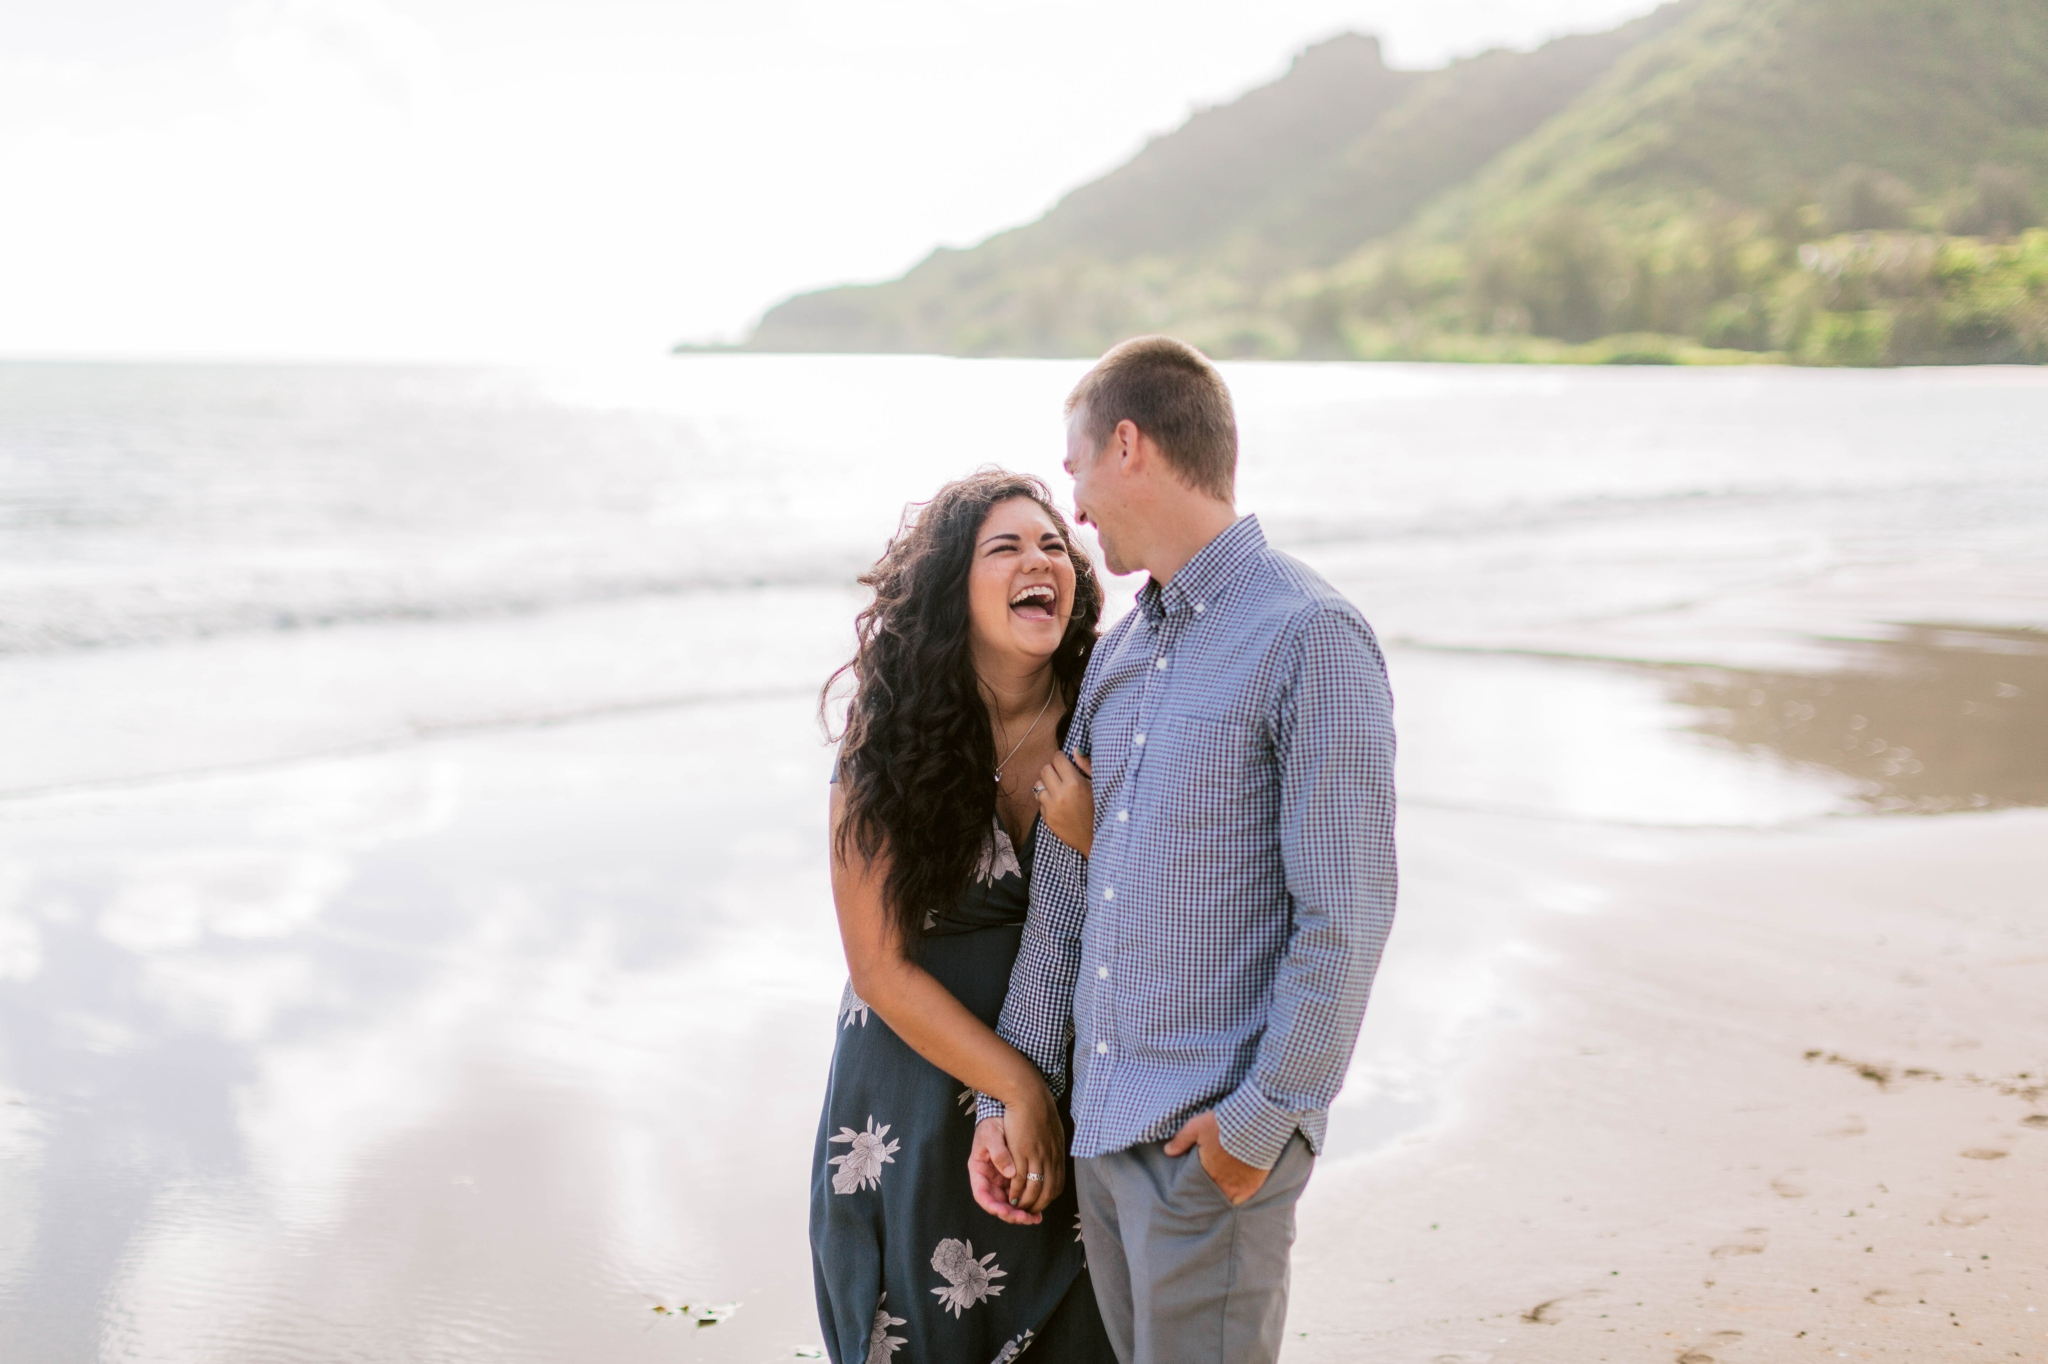 Girl smiling at her Fiance - Rilee + Max - Beach Engagement Session at Kahana Bay in Kaaawa, HI - Oahu Hawaii Wedding Photographer - #hawaiiengagementphotographer #oahuengagementphotographer